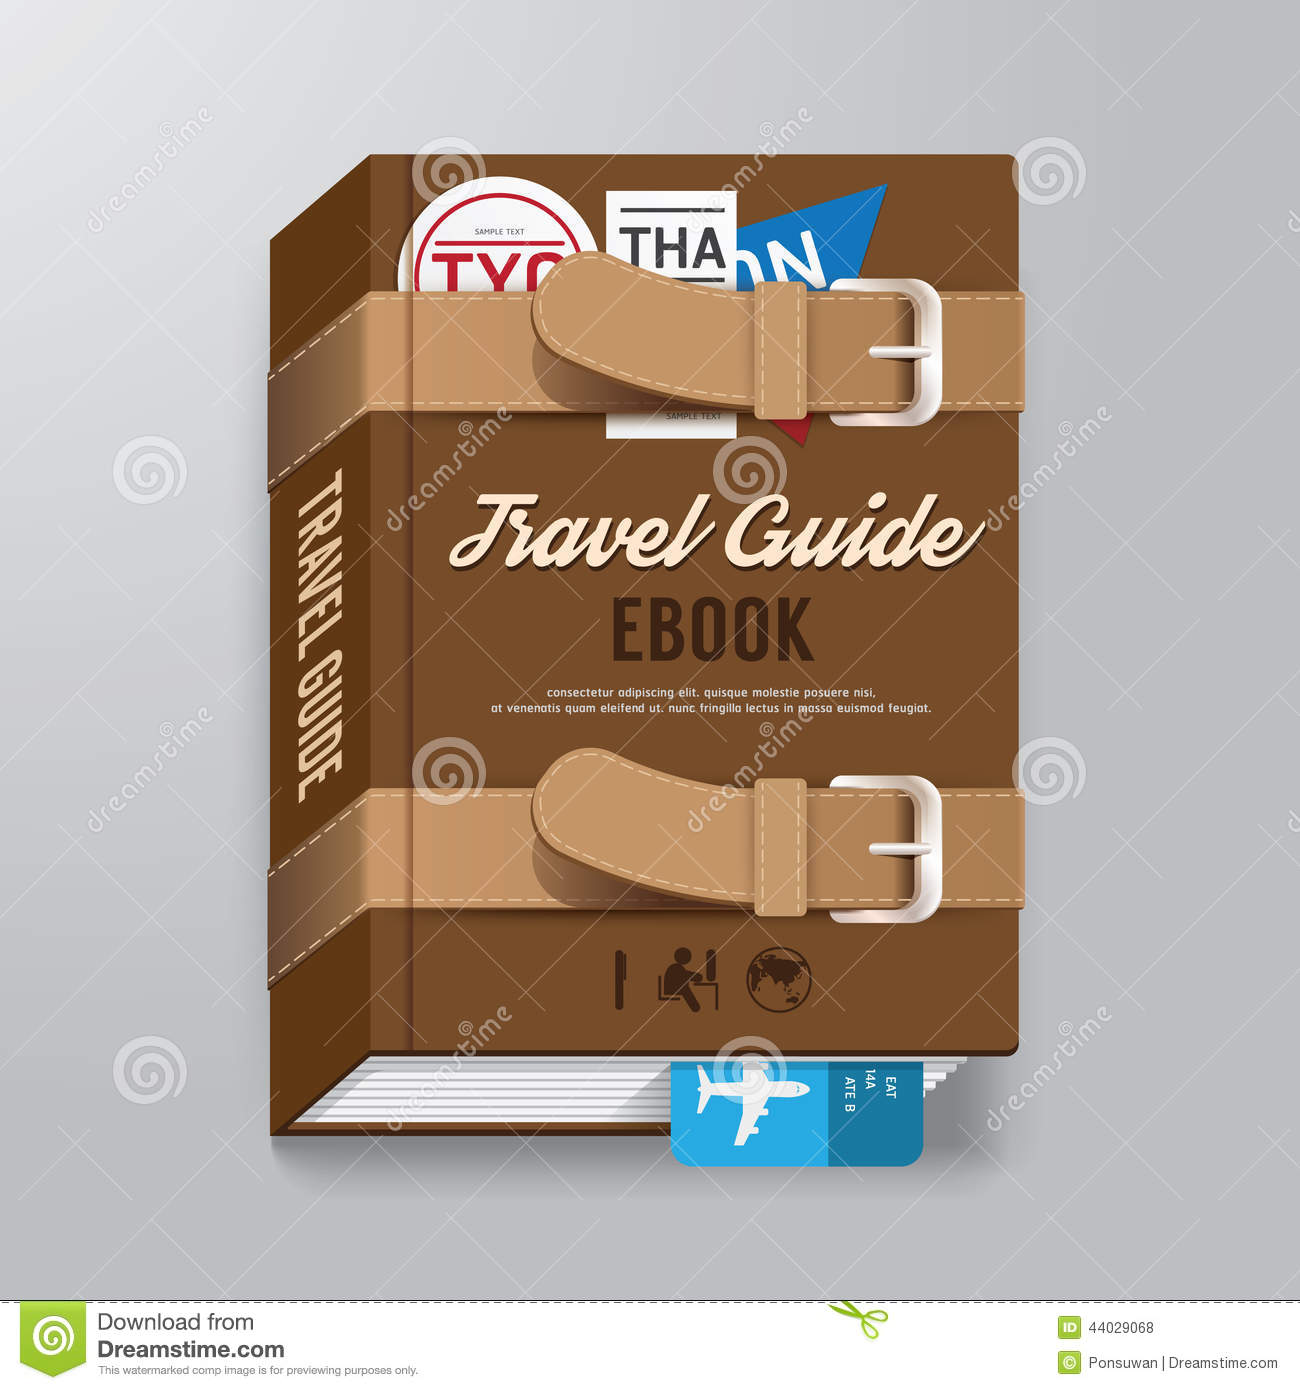 Book Cover Design Drawing : Book cover travel guide design luggage concept template